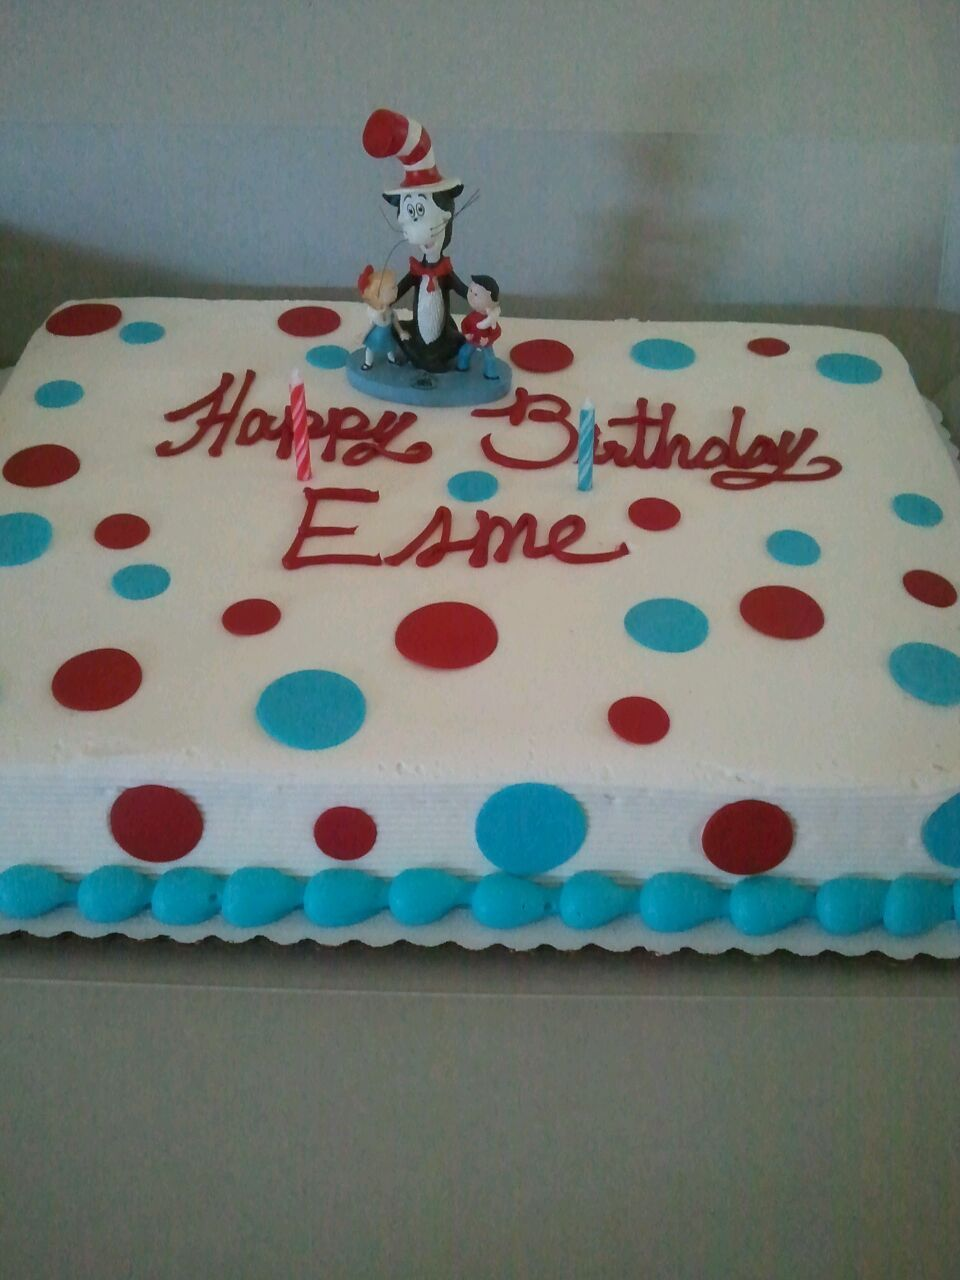 Simple cat in the hat cake from Safeway Birthday cakes Pinterest